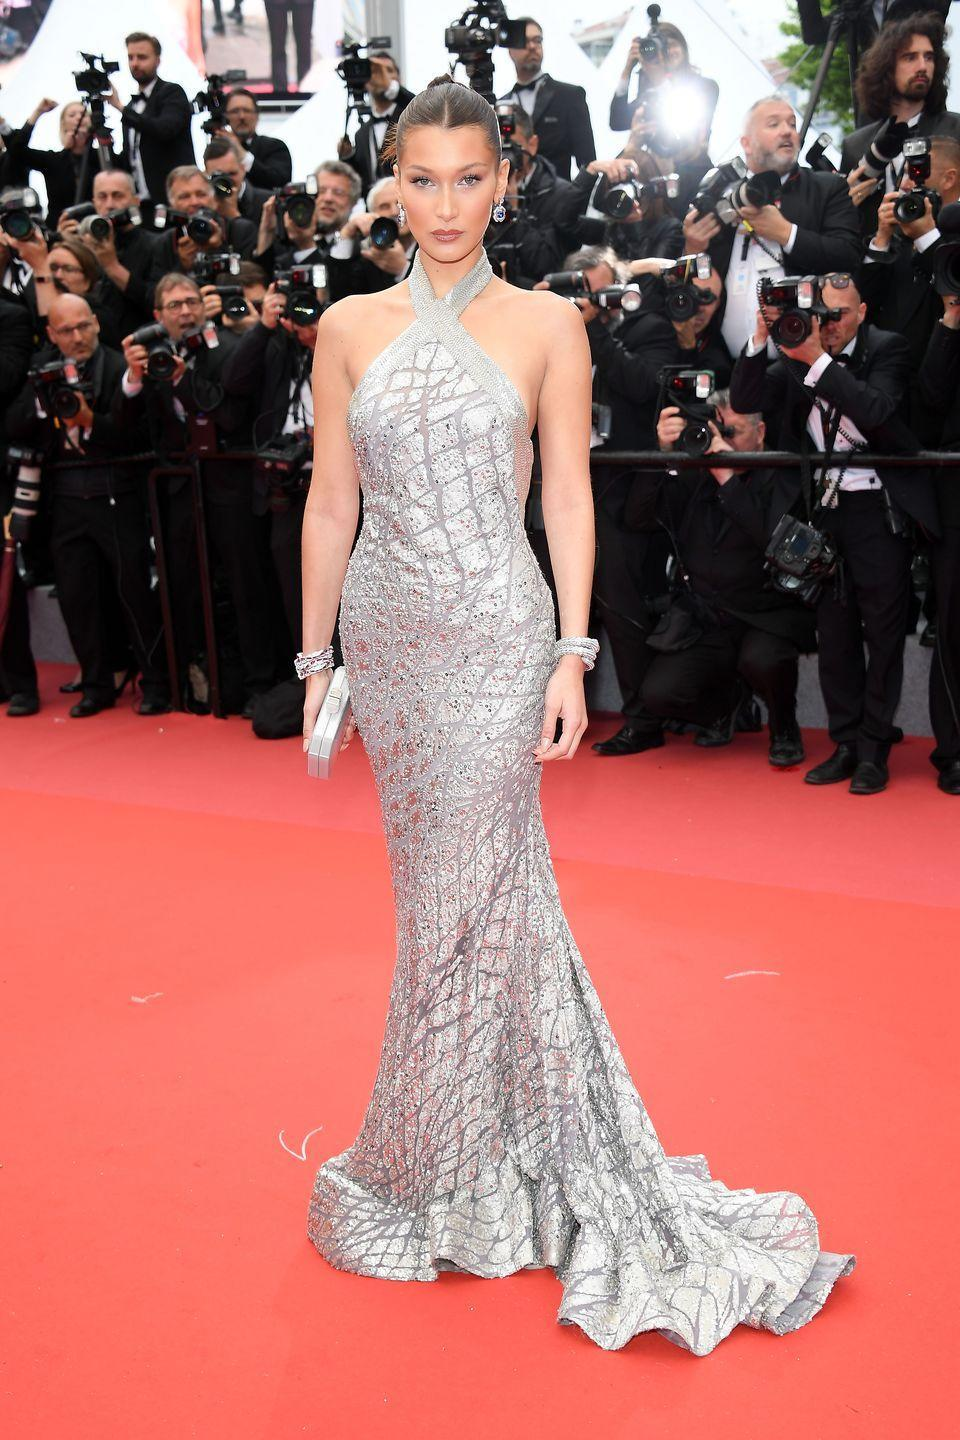 <p>The 21-year-old rocked a sleek silver sequined column gown for the premiere of Blackkklansman at the Cannes Film Festival in May 2018. She wore her hair in a bun and accessorised with giant sapphire dangle earrings. </p>